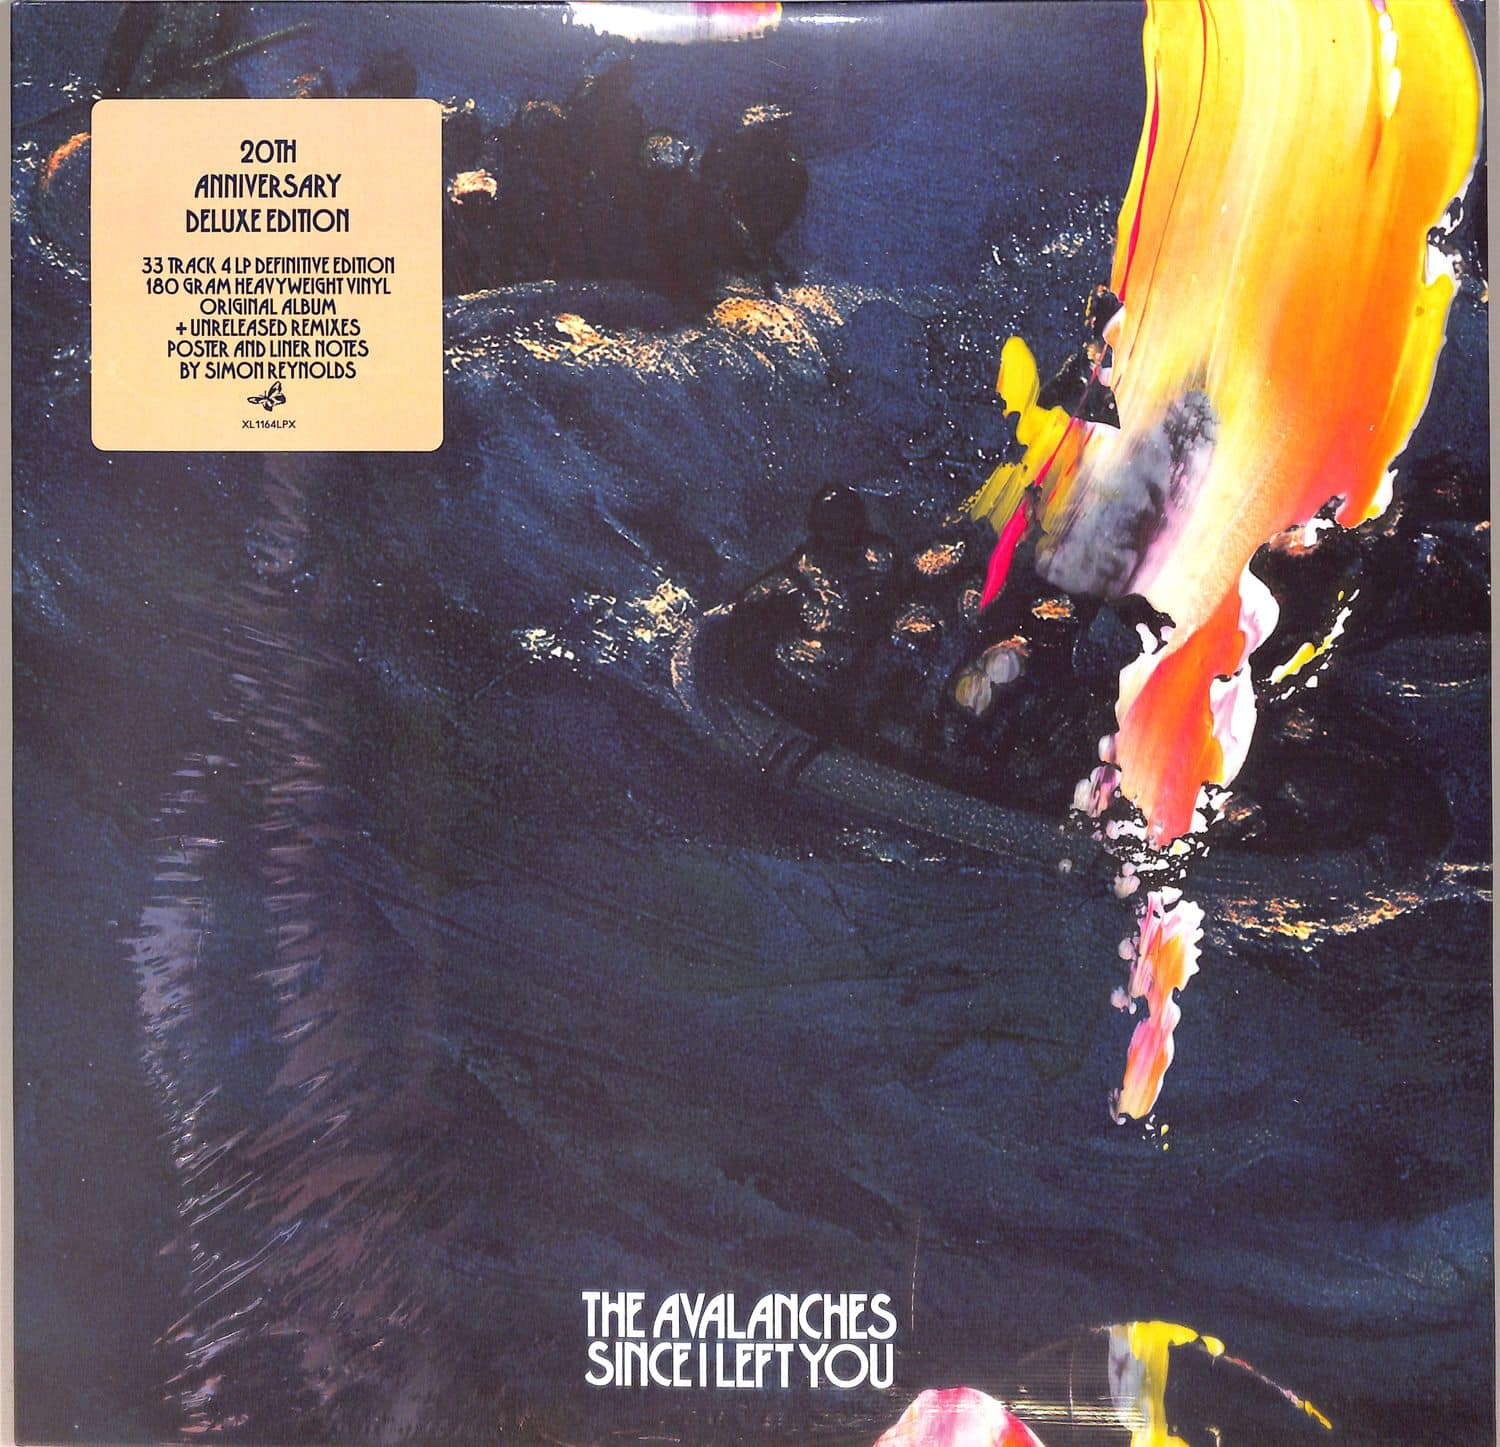 The Avalanches - SINCE I LEFT YOU